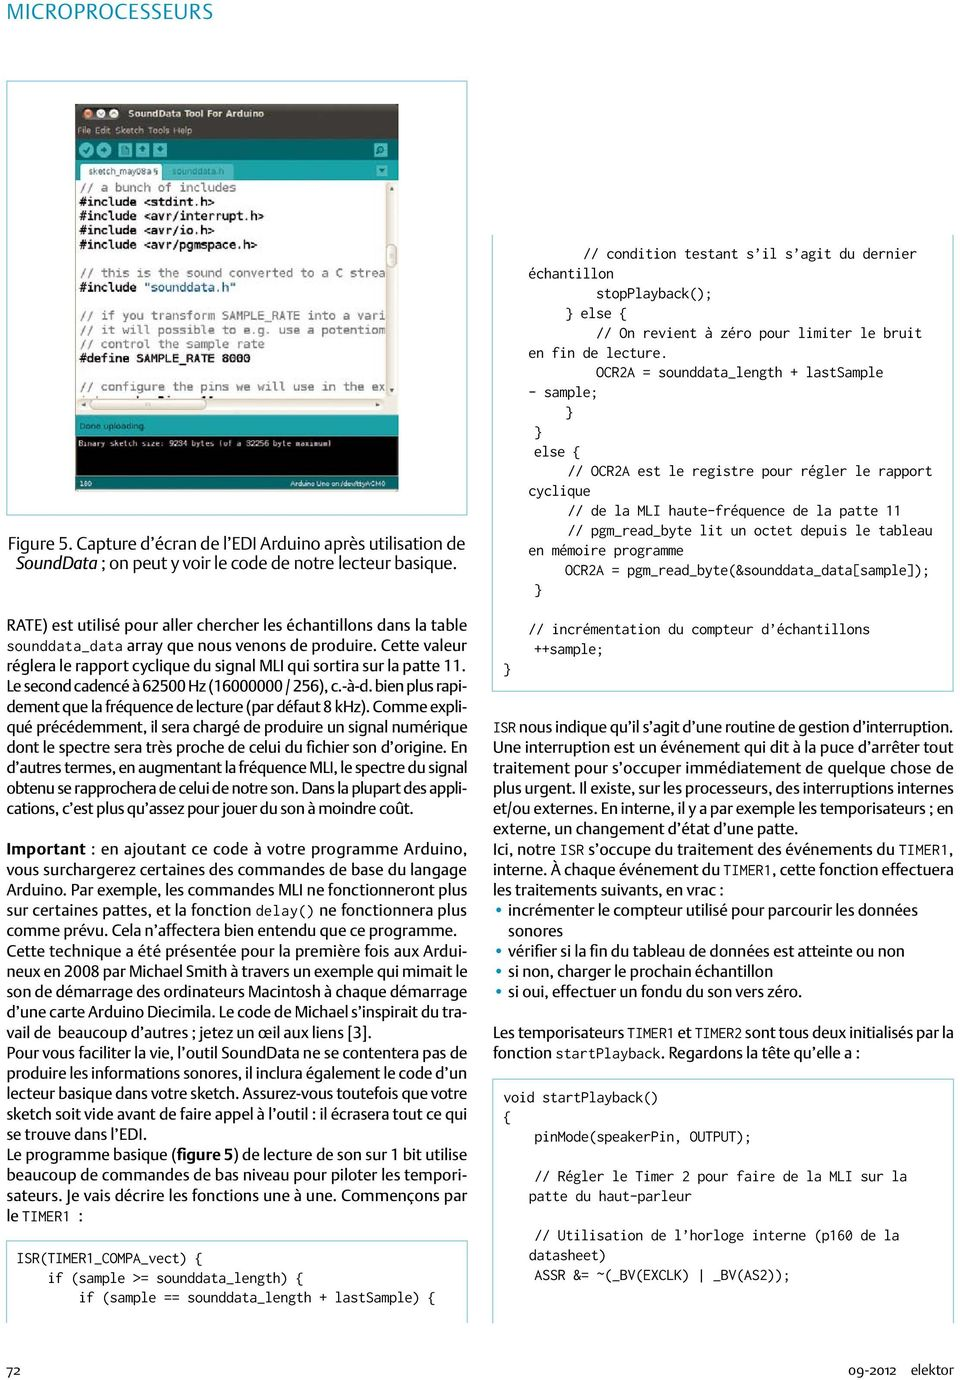 Compilation Arduino Tous Les Articles Parus Dans Elektor 249 Pages Pdf One Lead To The Led39s Cathode And Other Top Rail Cette Valeur Rglera Le Rapport Cyclique Du Signal Mli Qui Sortira Sur La Patte 11